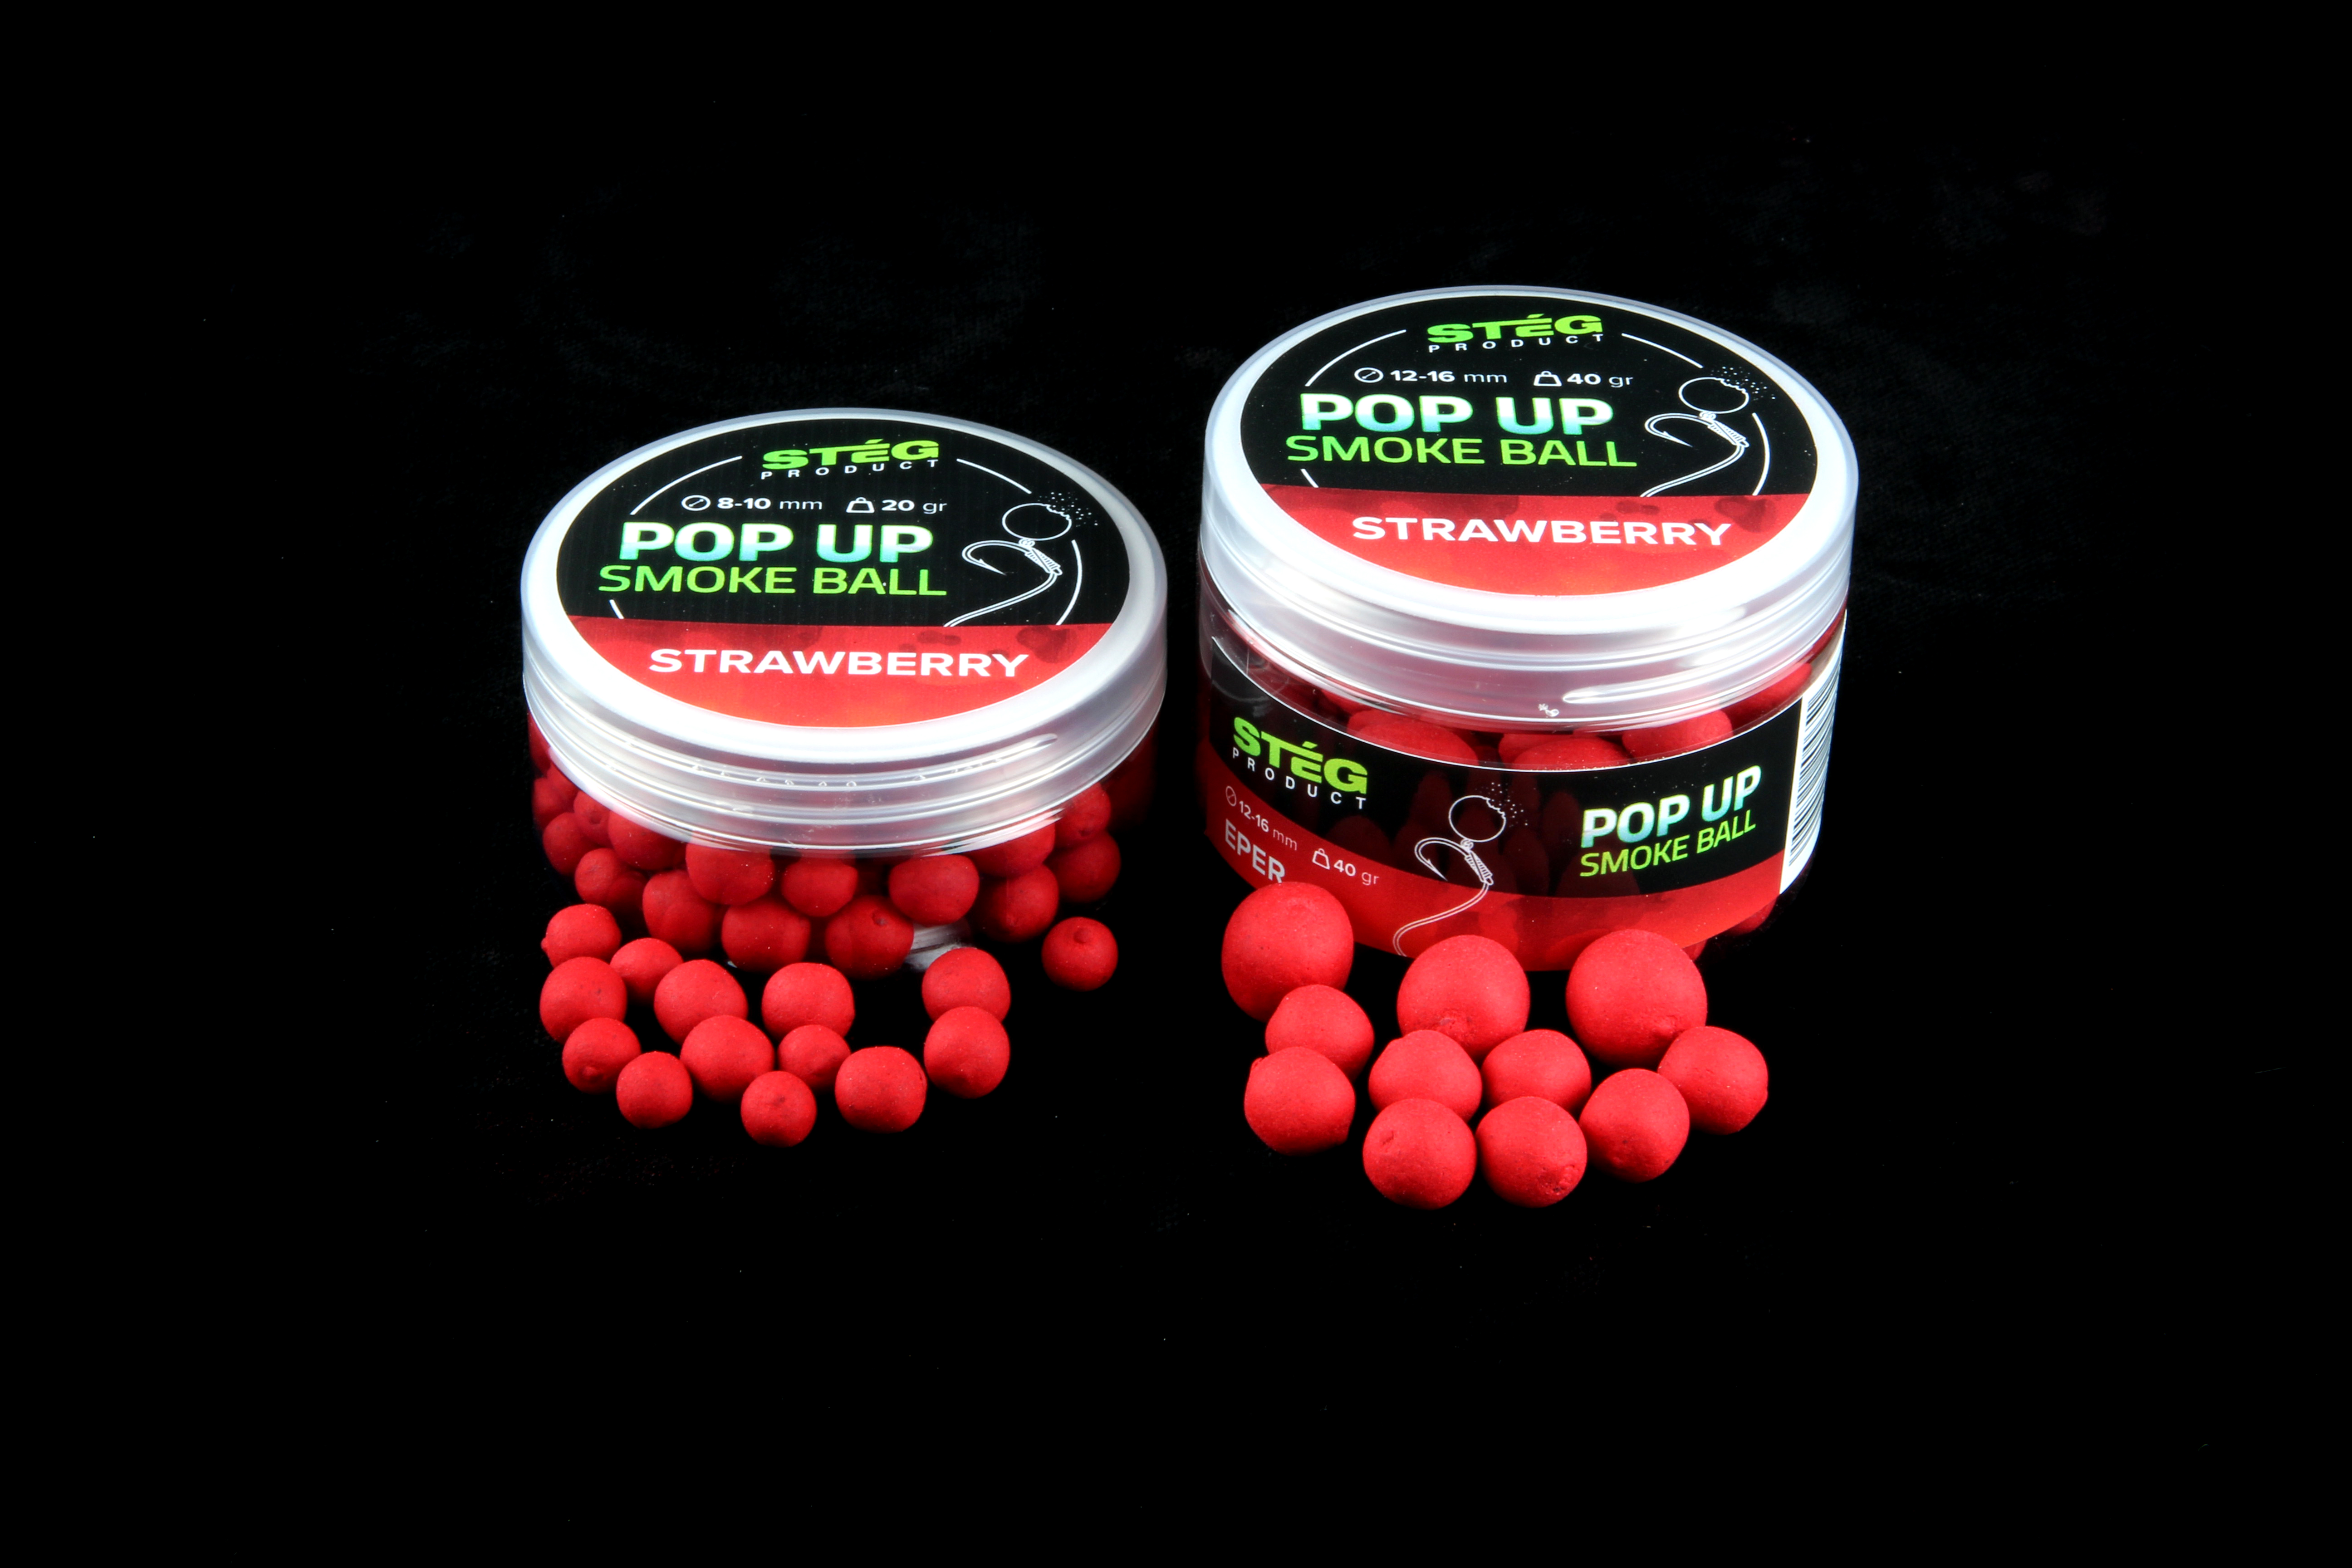 Stég Product Pop Up Smoke Ball 12-16 mm STRAWBERRY 40gr (SP171302)